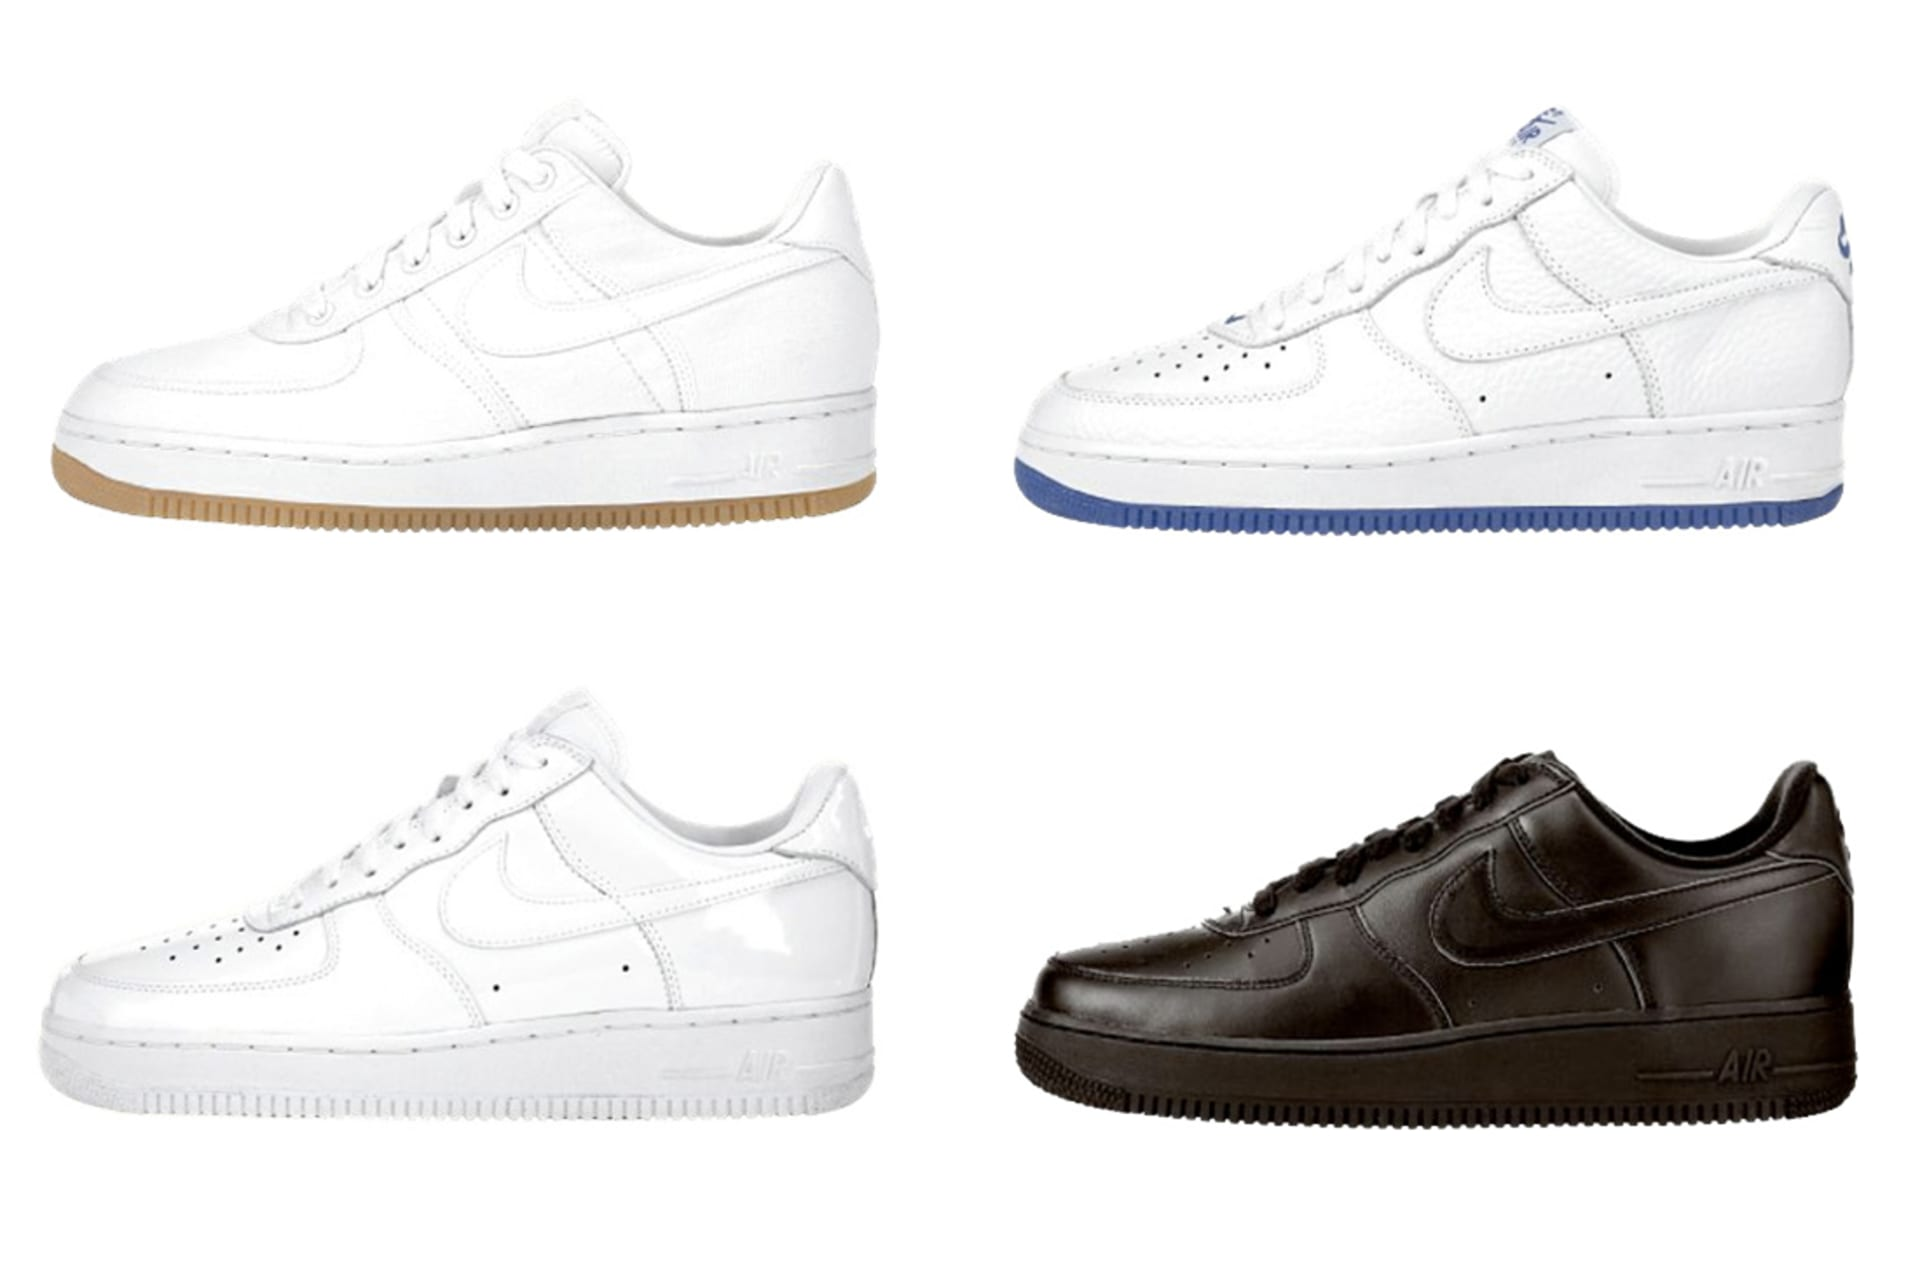 new arrival 6cb93 7eb42 1996 Nike Air Force 1